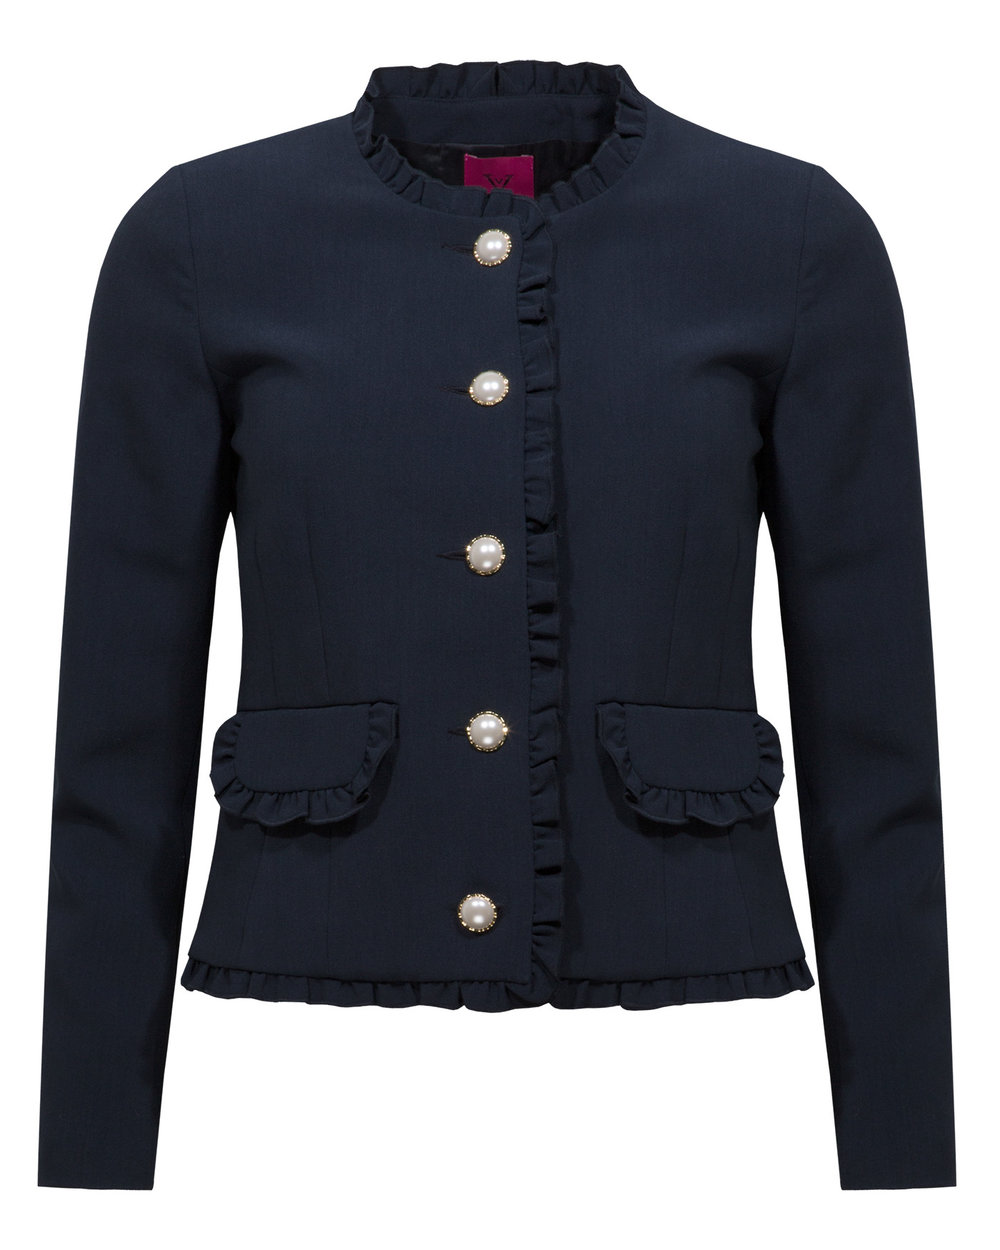 Rosie-jacket-navy-blue.jpg